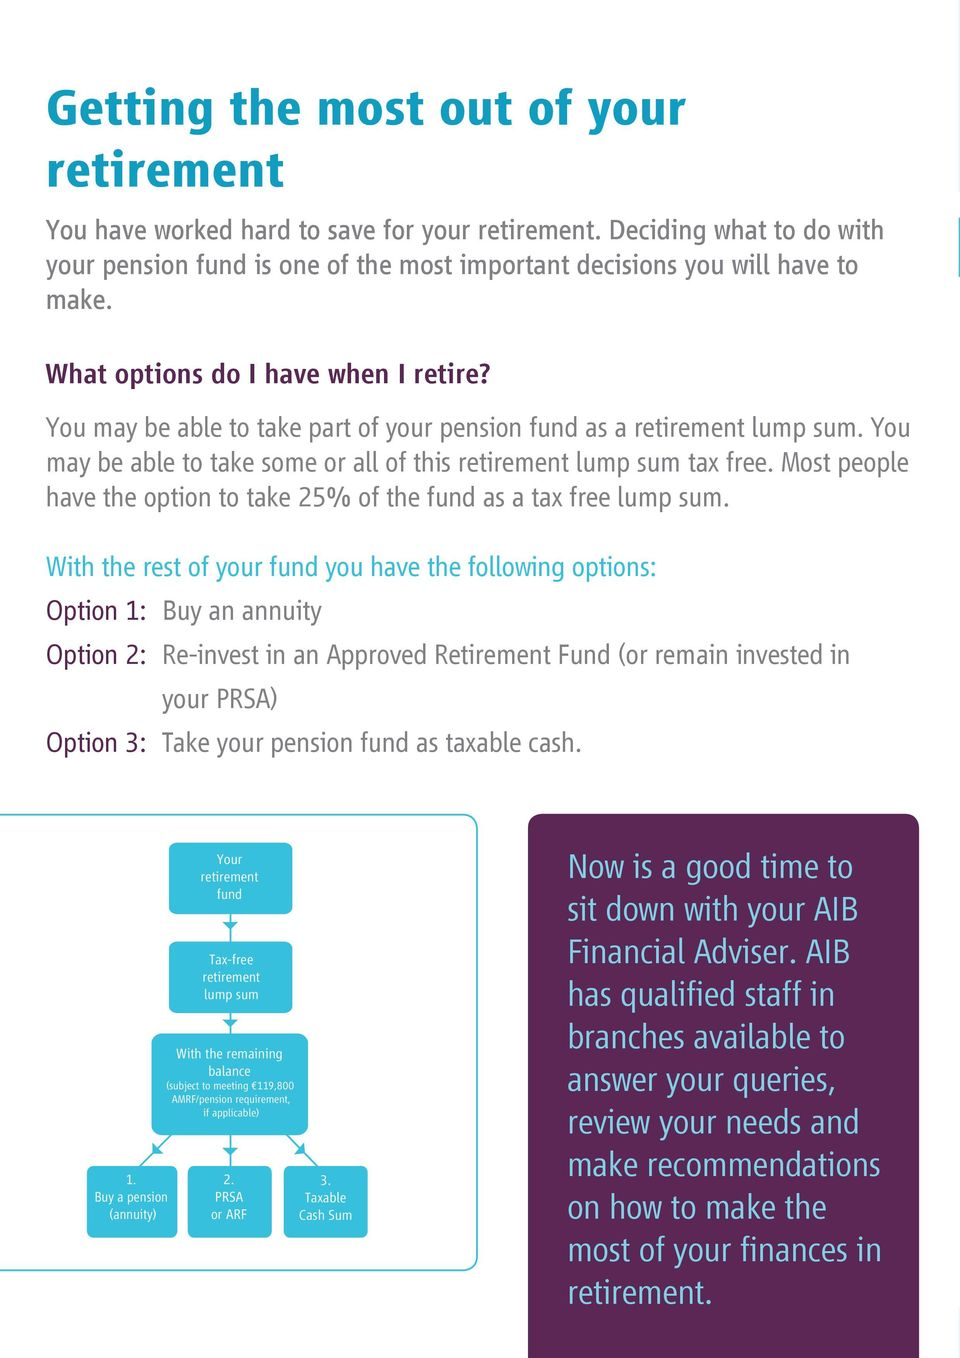 Most people have the option to take 25% of the fund as a tax free lump sum.